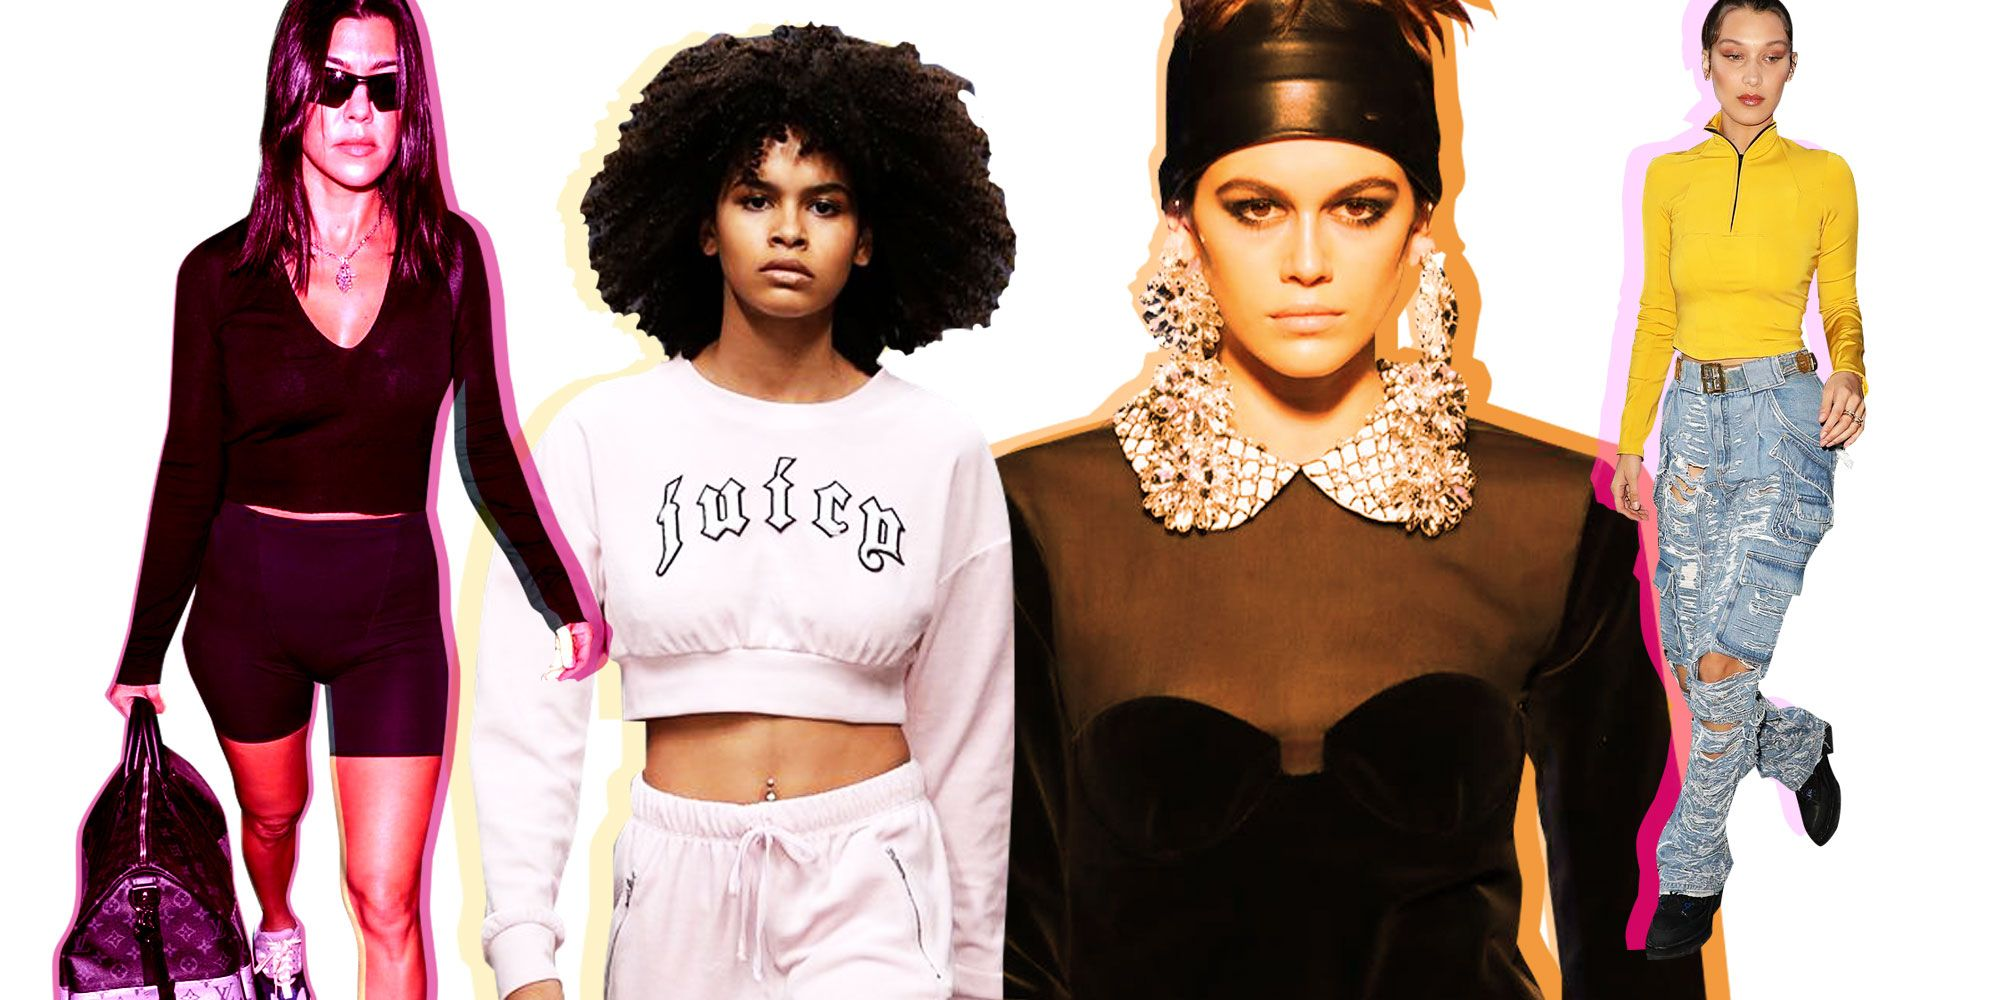 30 '80s Fashion Trends Making an Epic Comeback